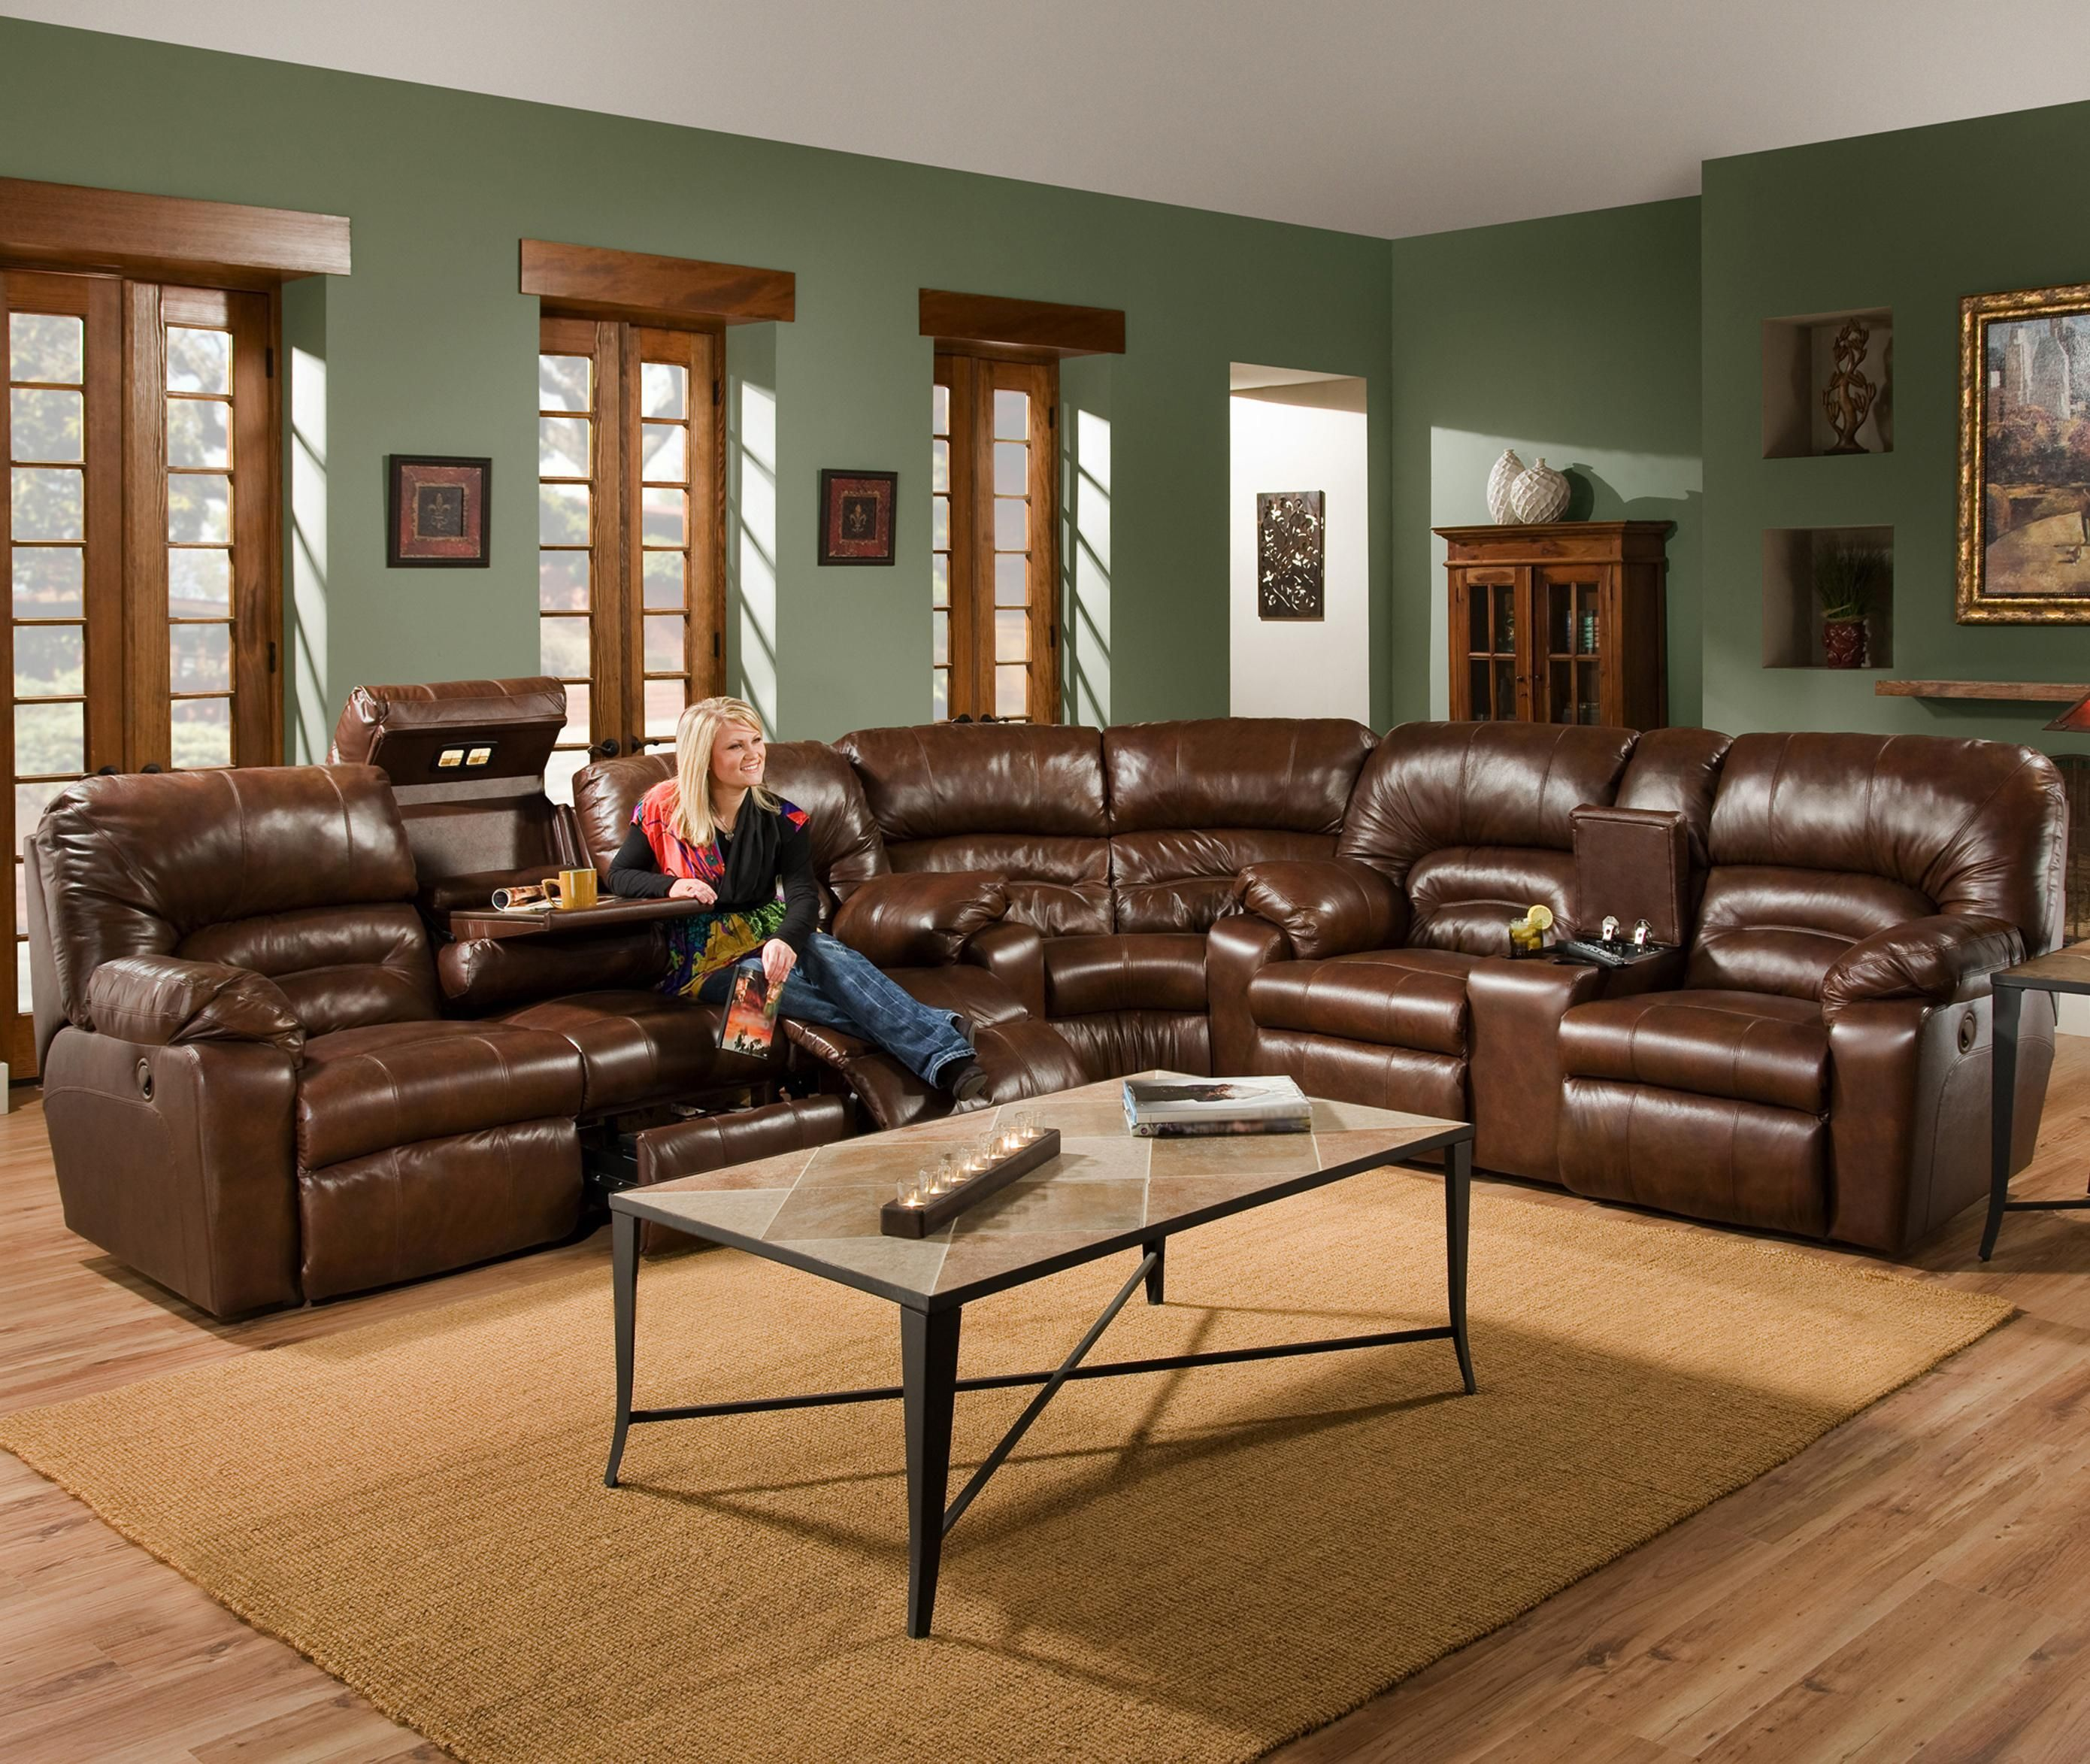 Best 596 3 Piece Reclining Sectional By Franklin With Images 400 x 300